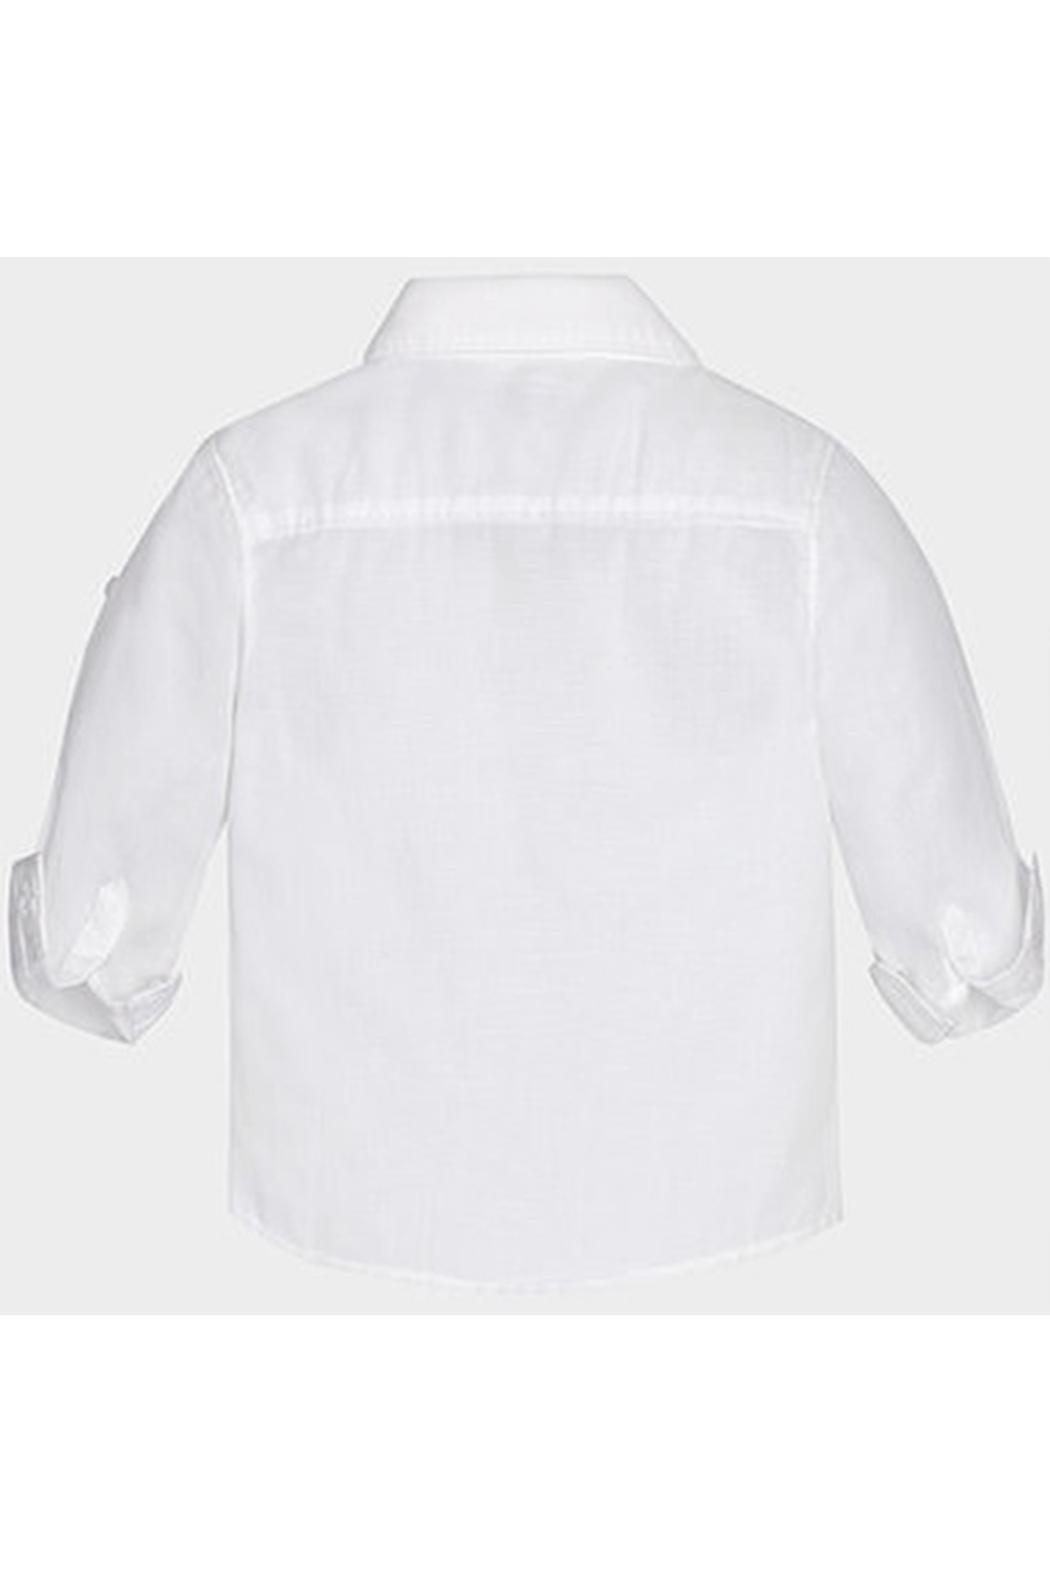 Mayoral White Linen Button Up - Back Cropped Image